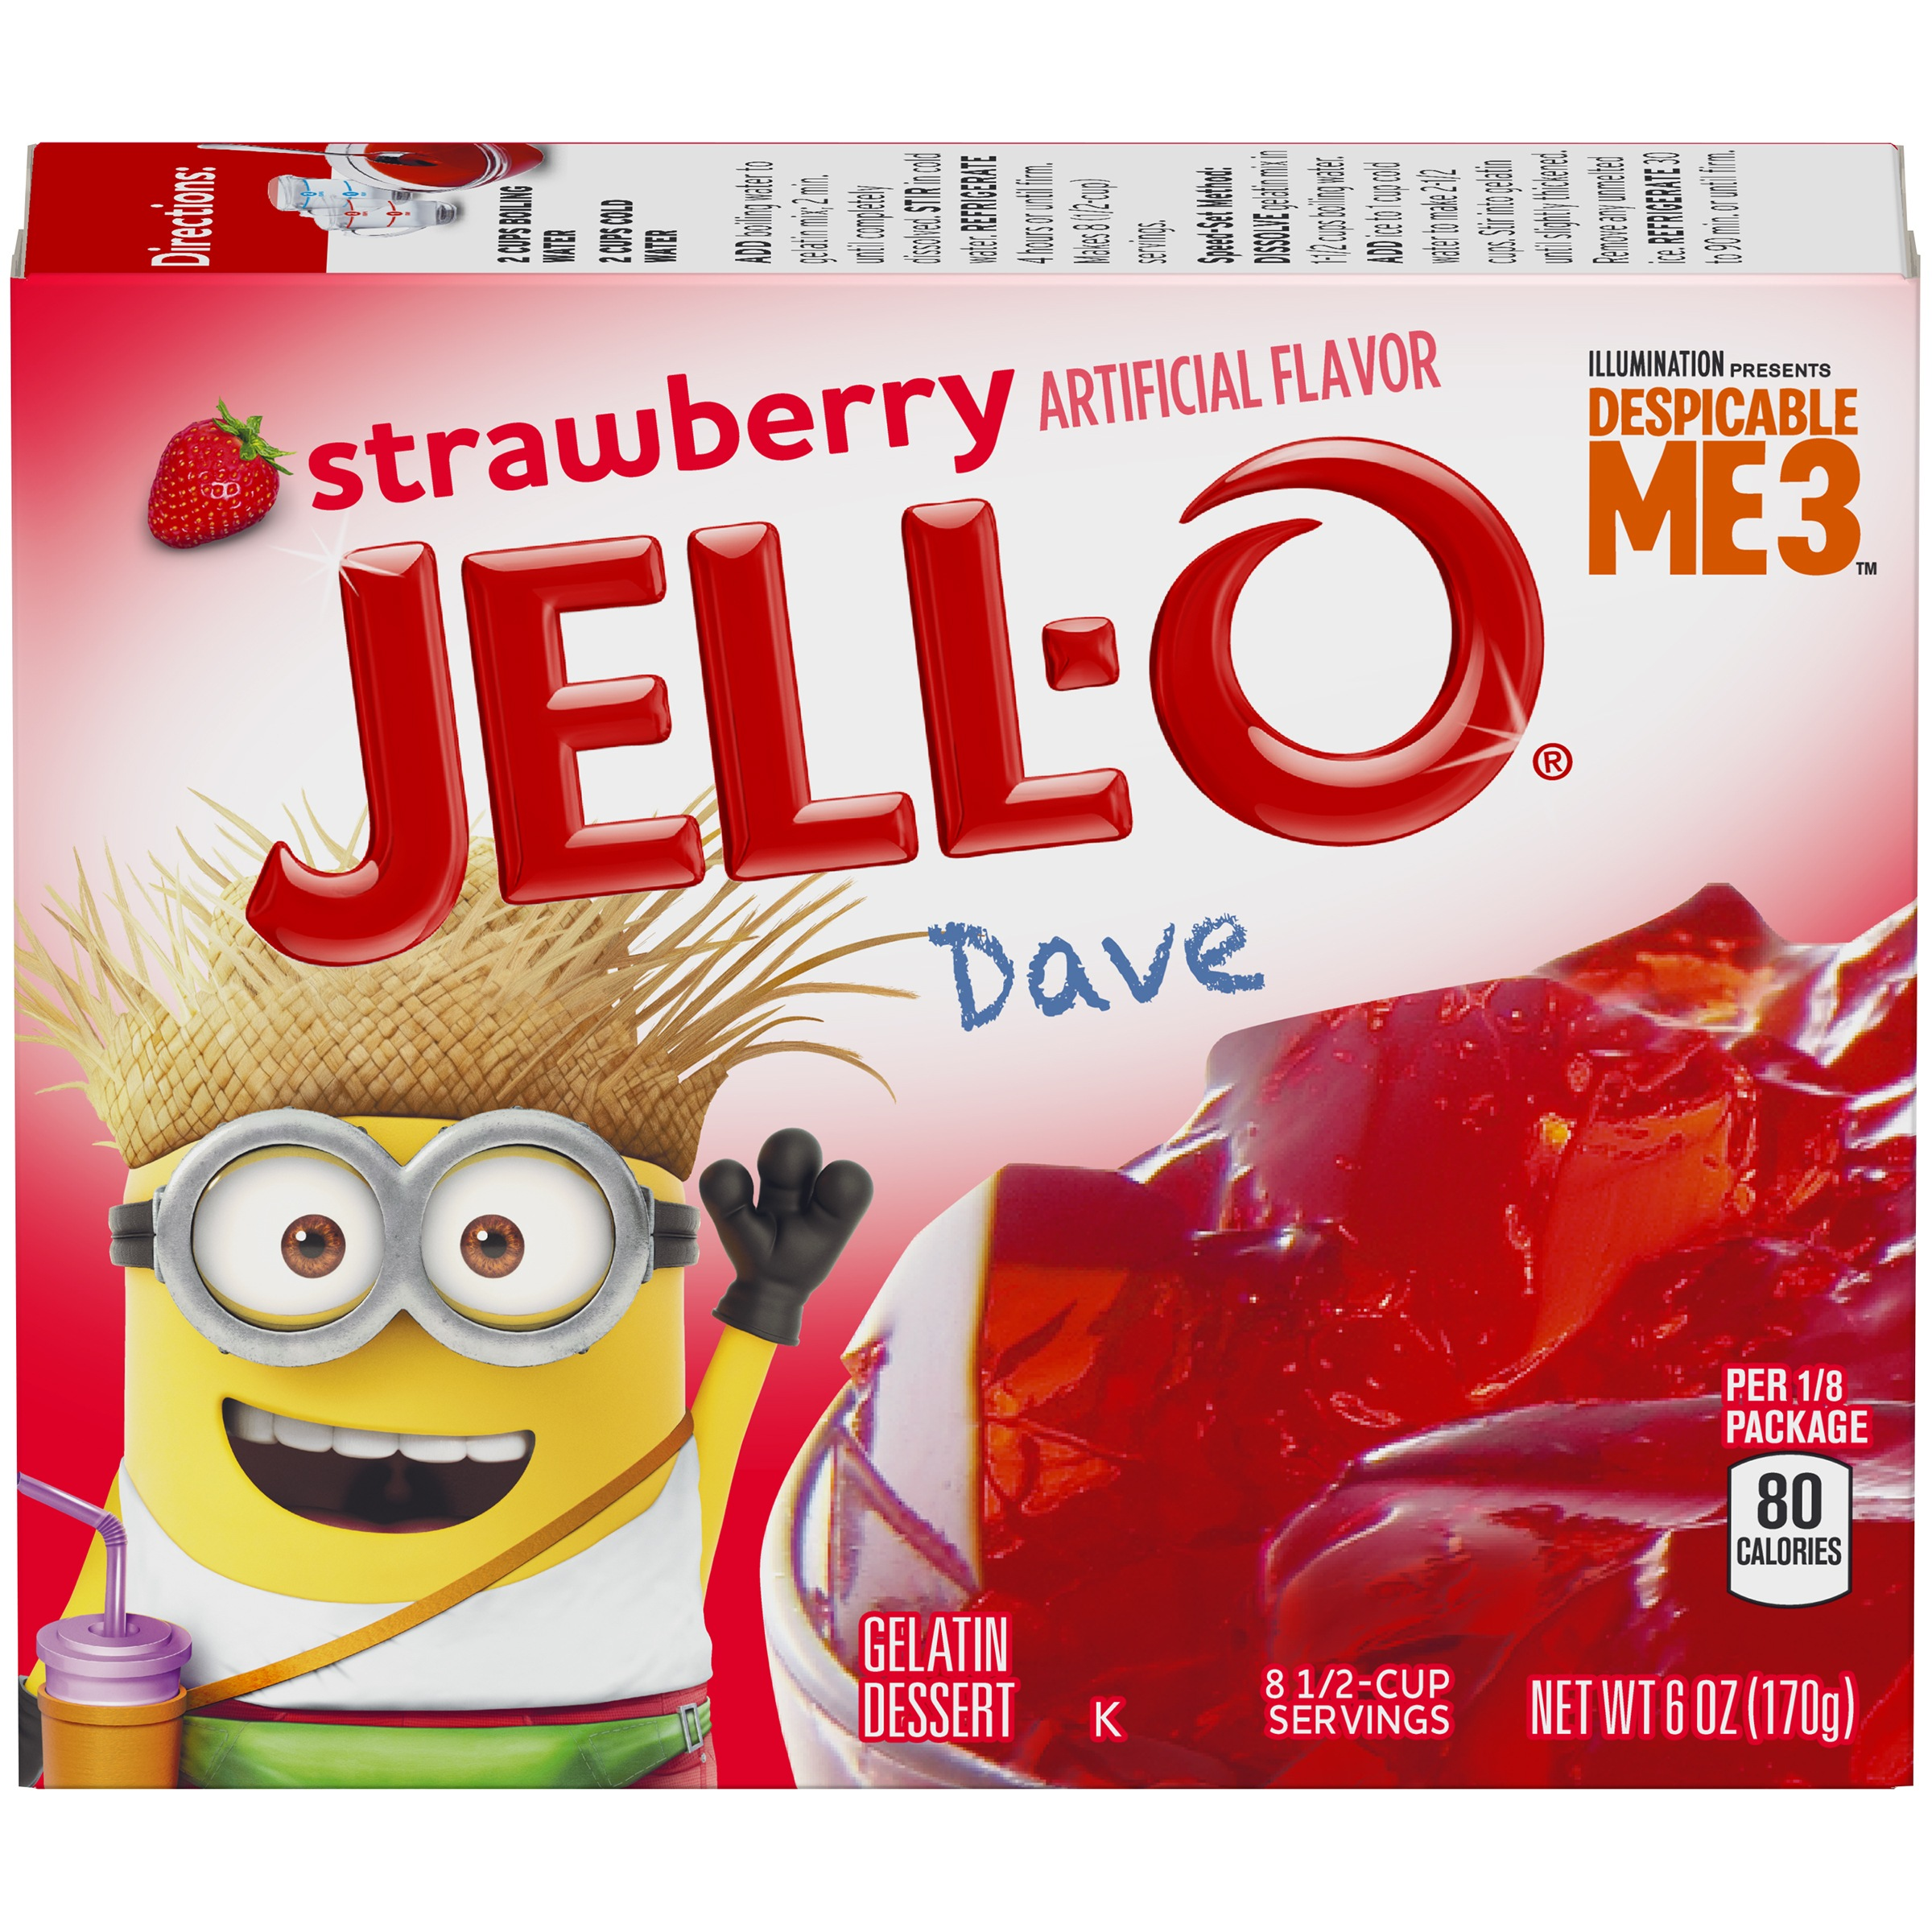 Jell-O Strawberry Gelatin Dessert Mix 6 oz. Box